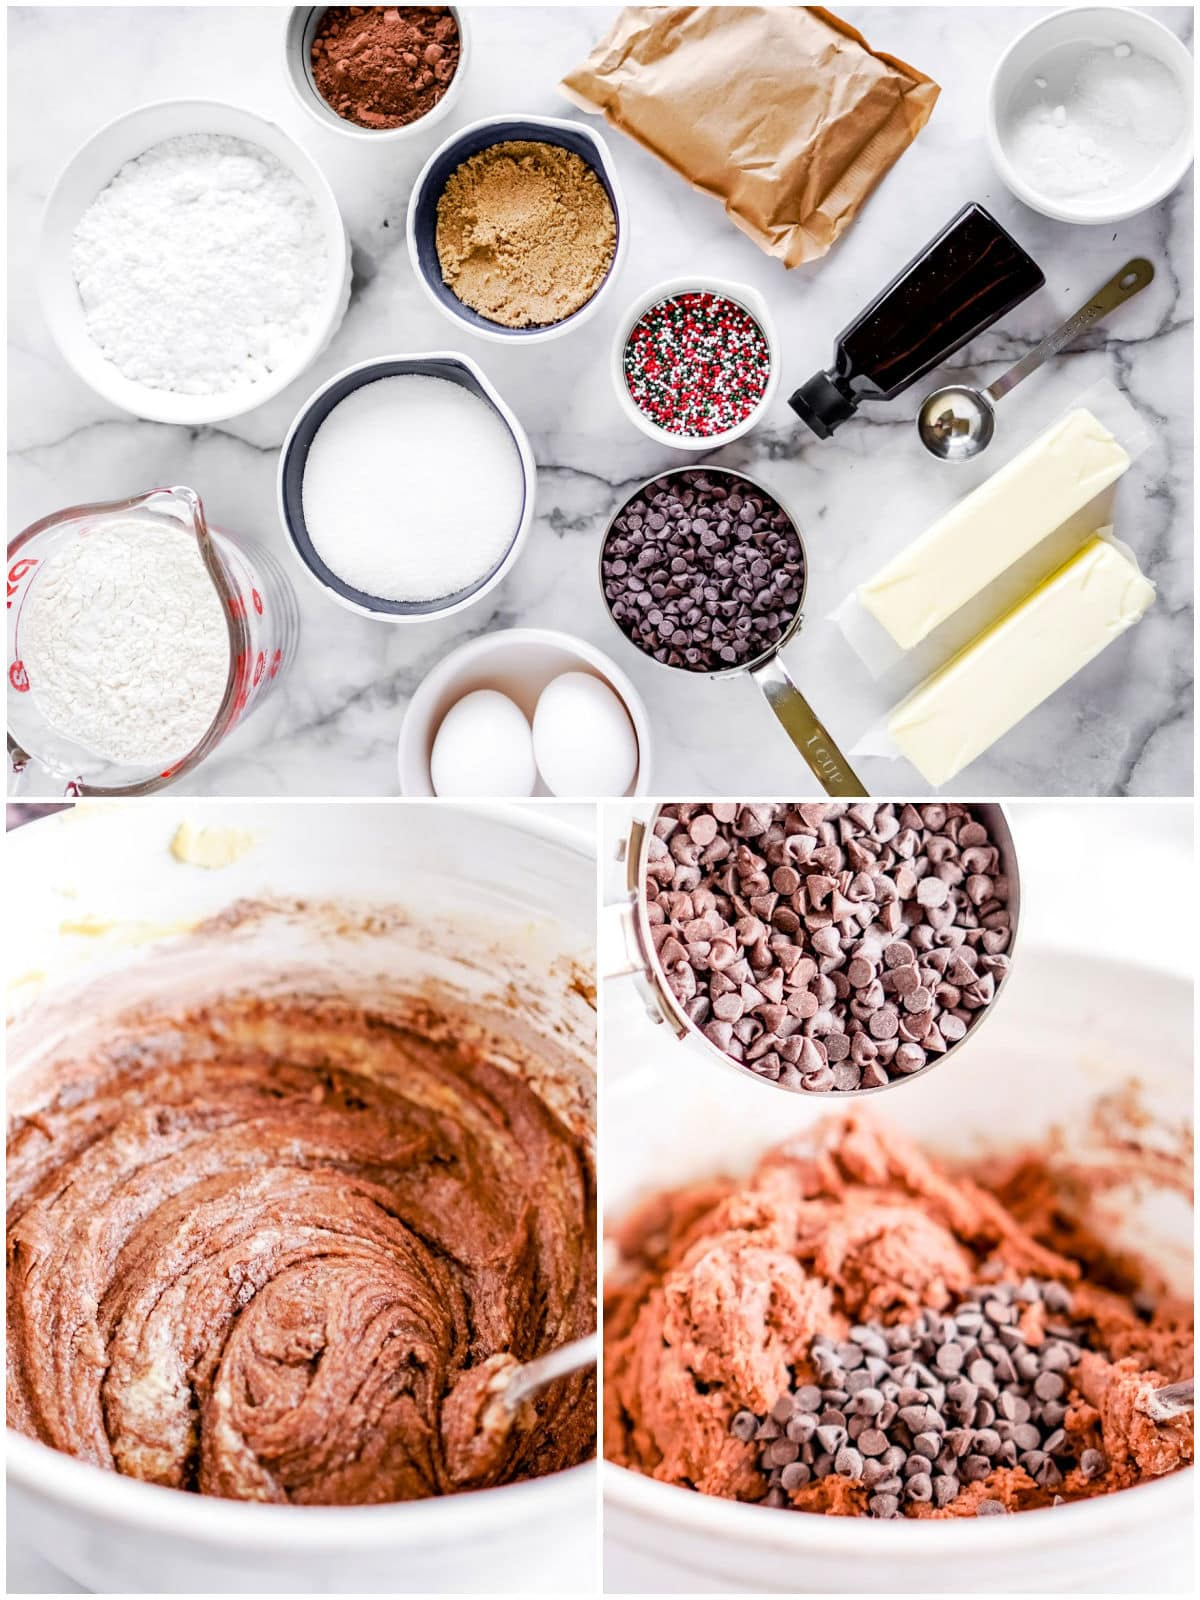 three image collage of cookie ingredients laid out and the cookie dough being mixed together